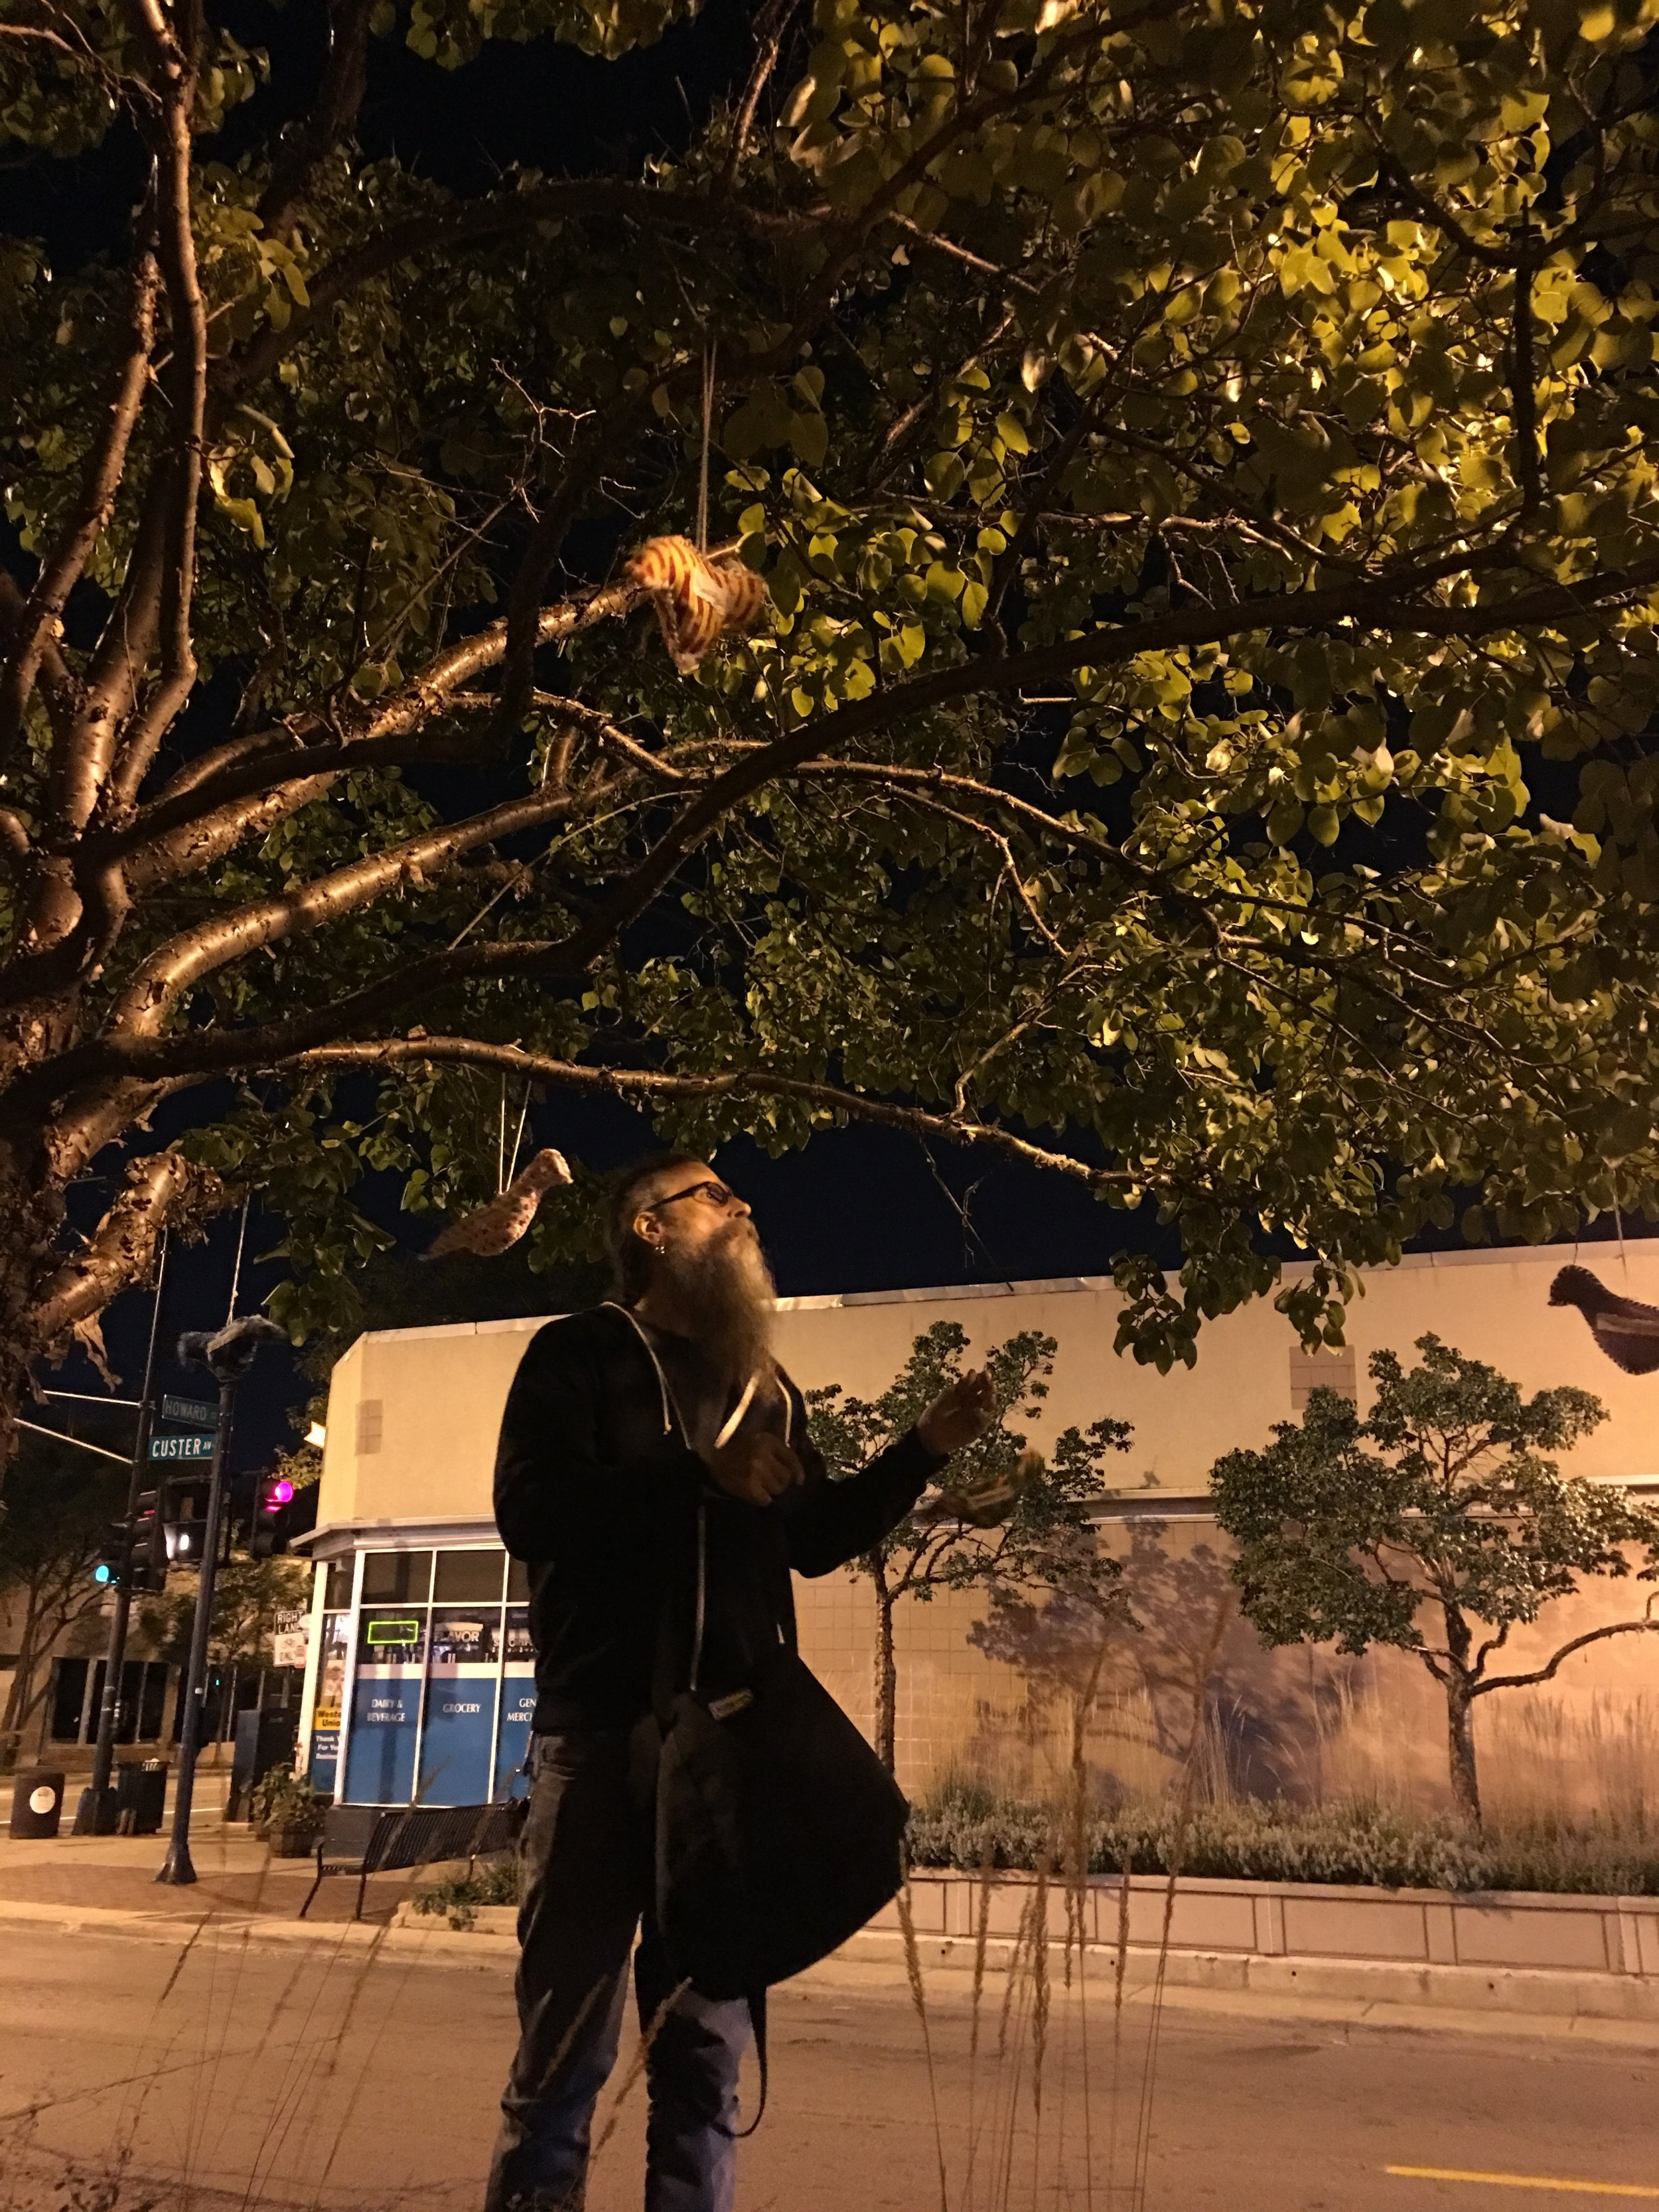 John-Michael hangs birds at the site of a recent shooting.